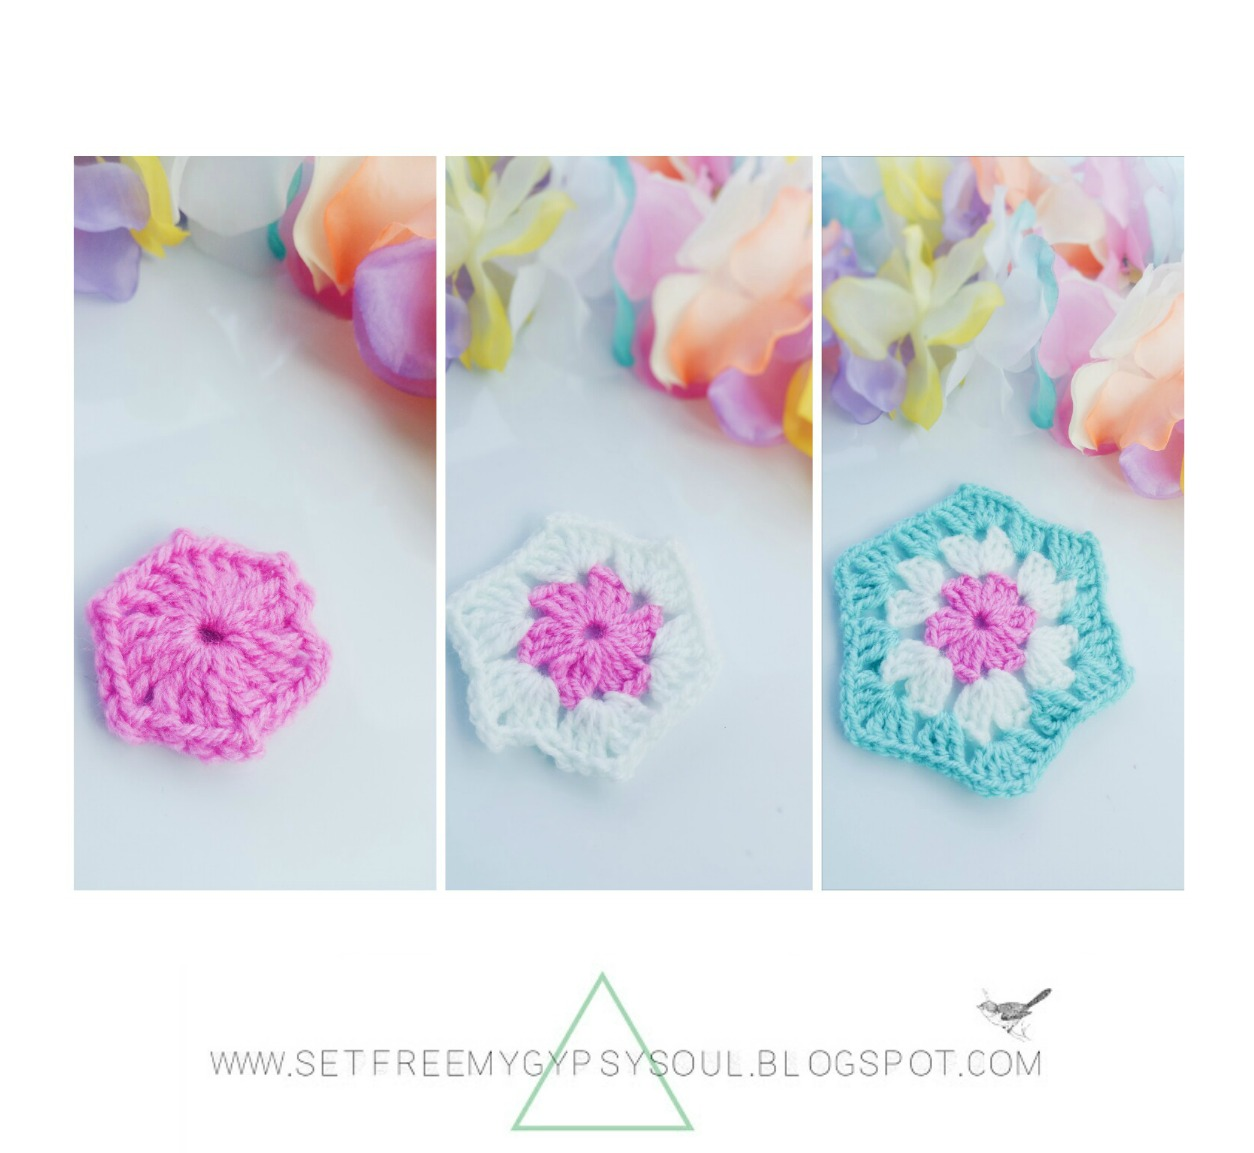 free crochet pattern how to granny hexagon boho gypsy soul wall art